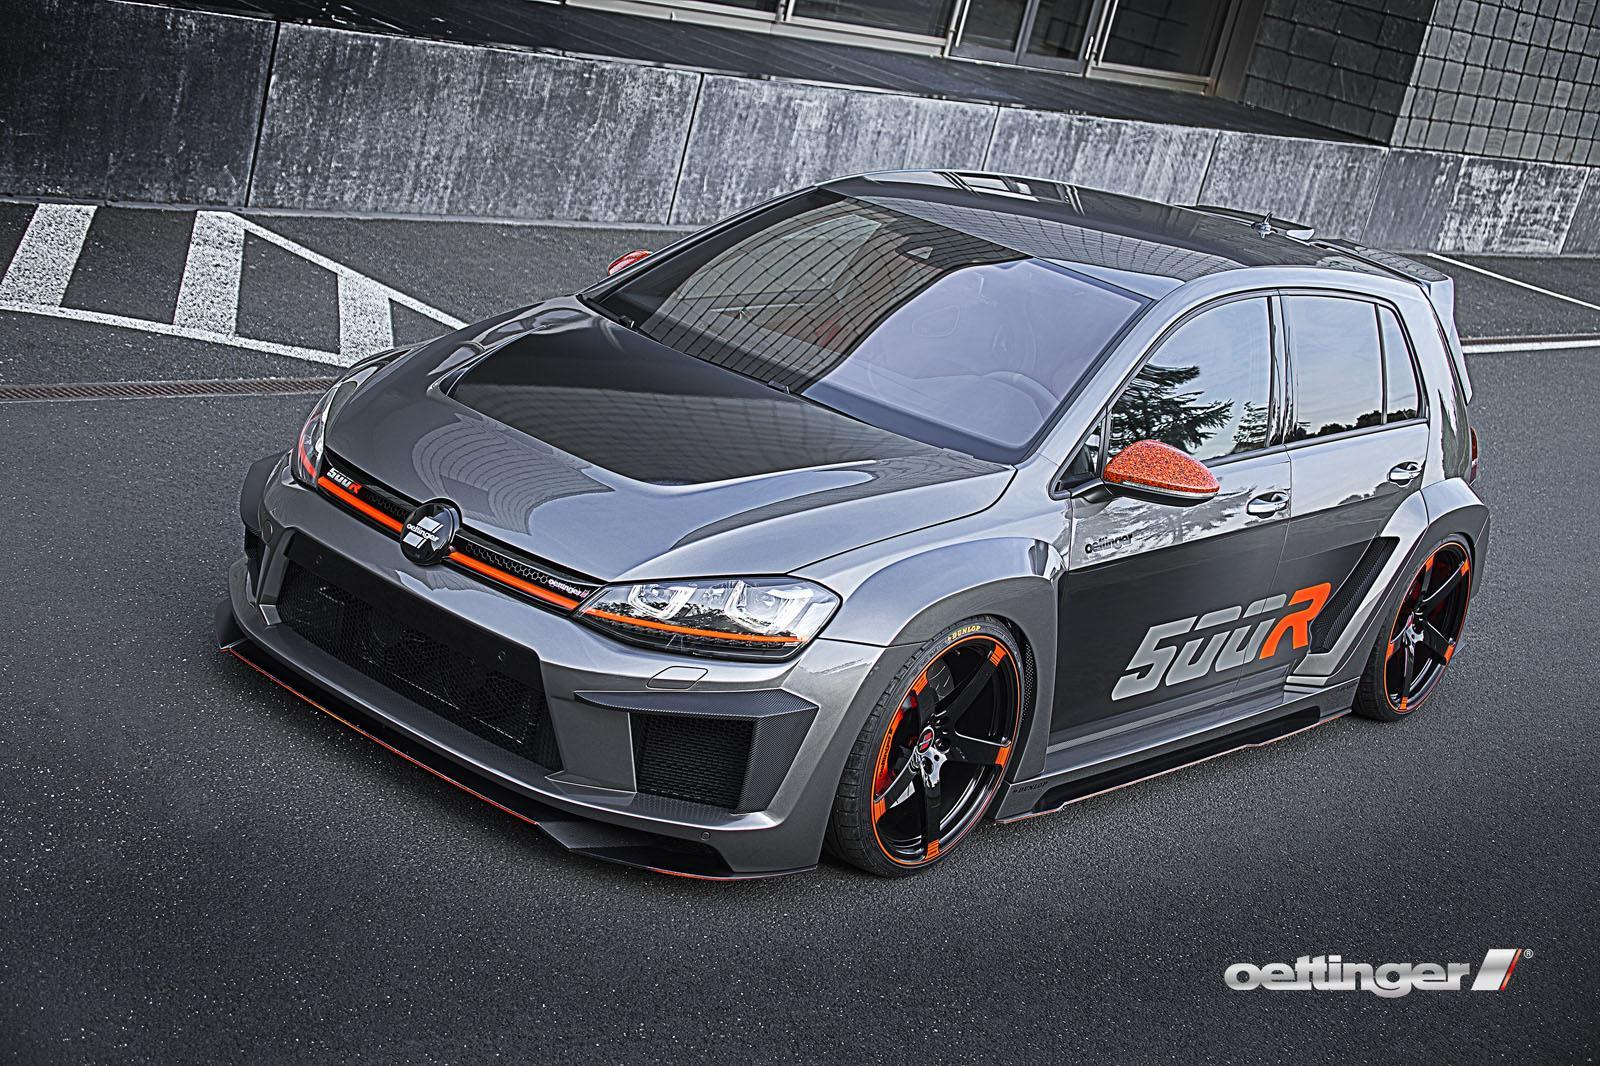 official 510hp volkswagen golf r500 by oettinger gtspirit. Black Bedroom Furniture Sets. Home Design Ideas